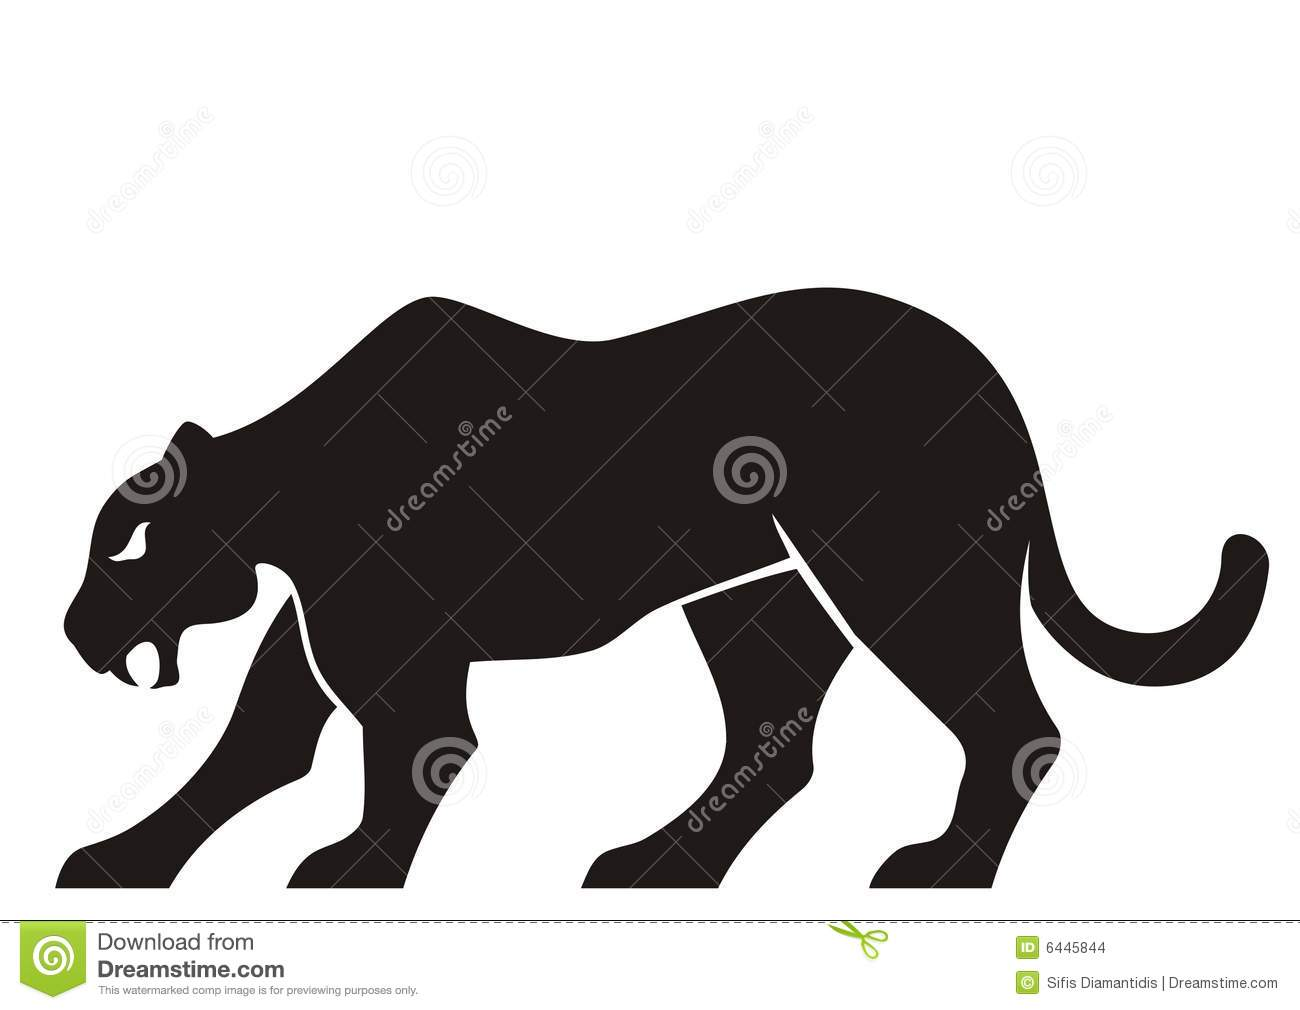 Black panther silhouette isolated on white background.